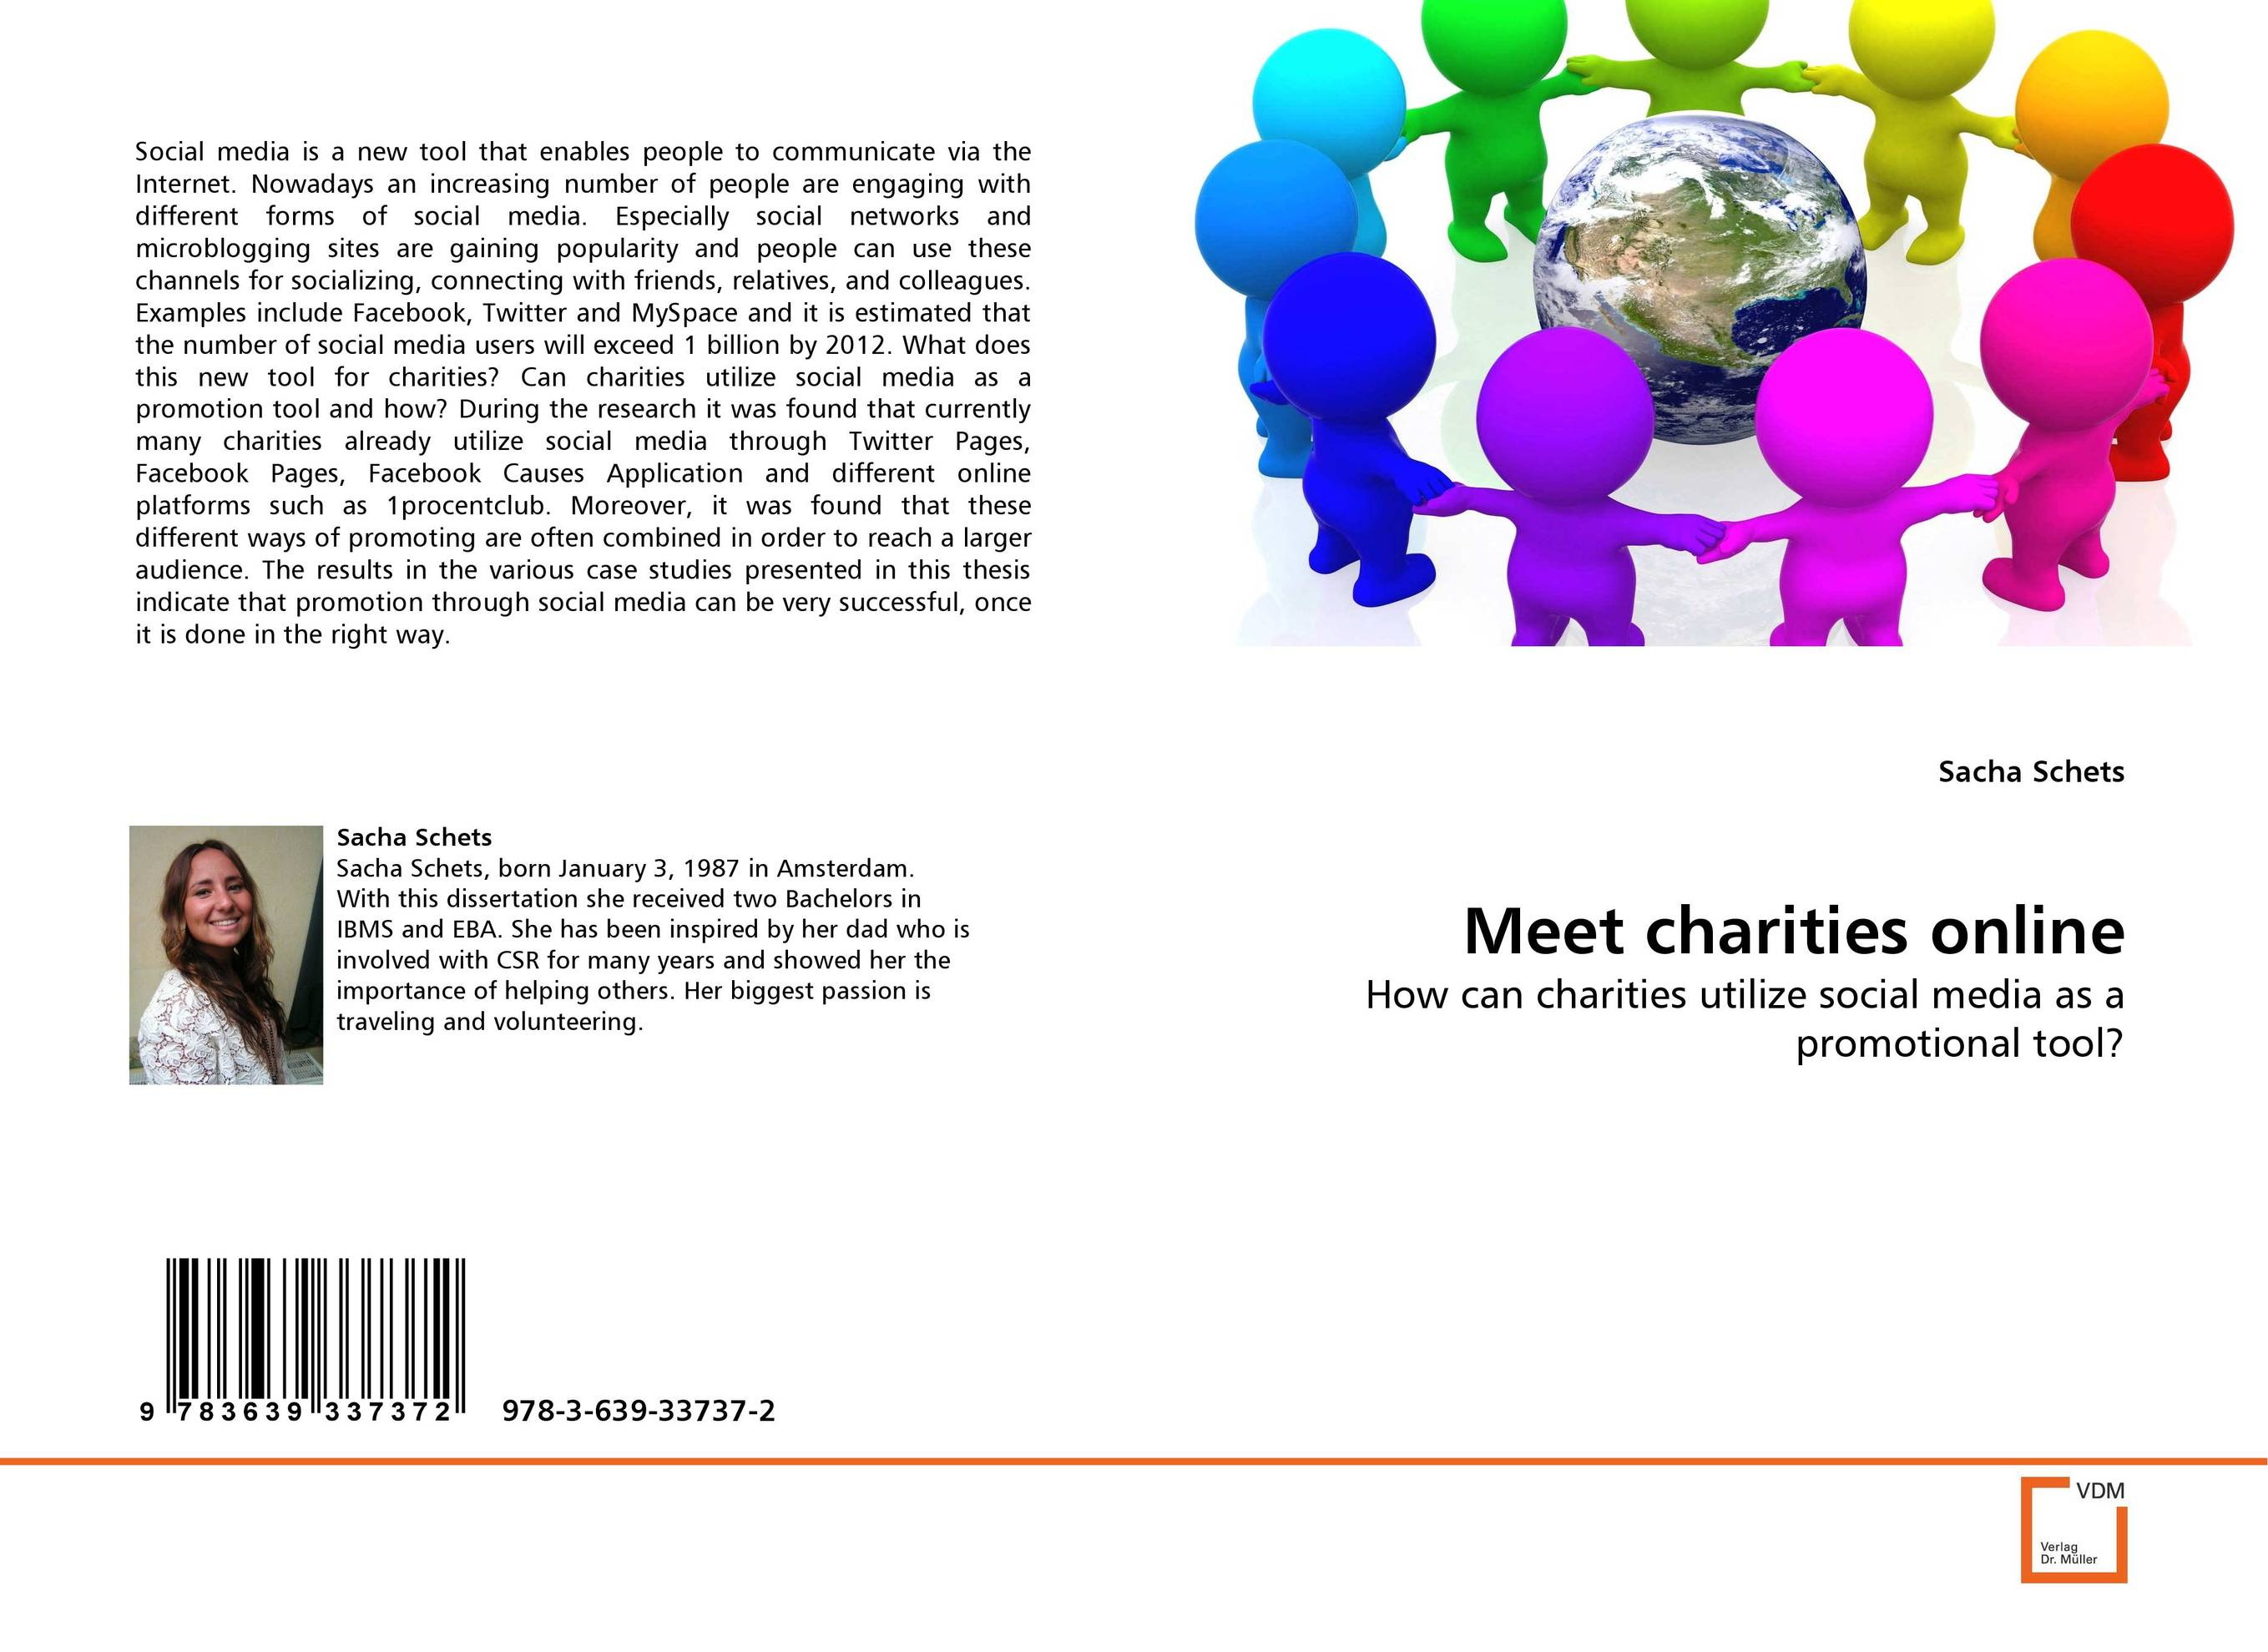 Meet charities online promotion mix strategies of icam through social media